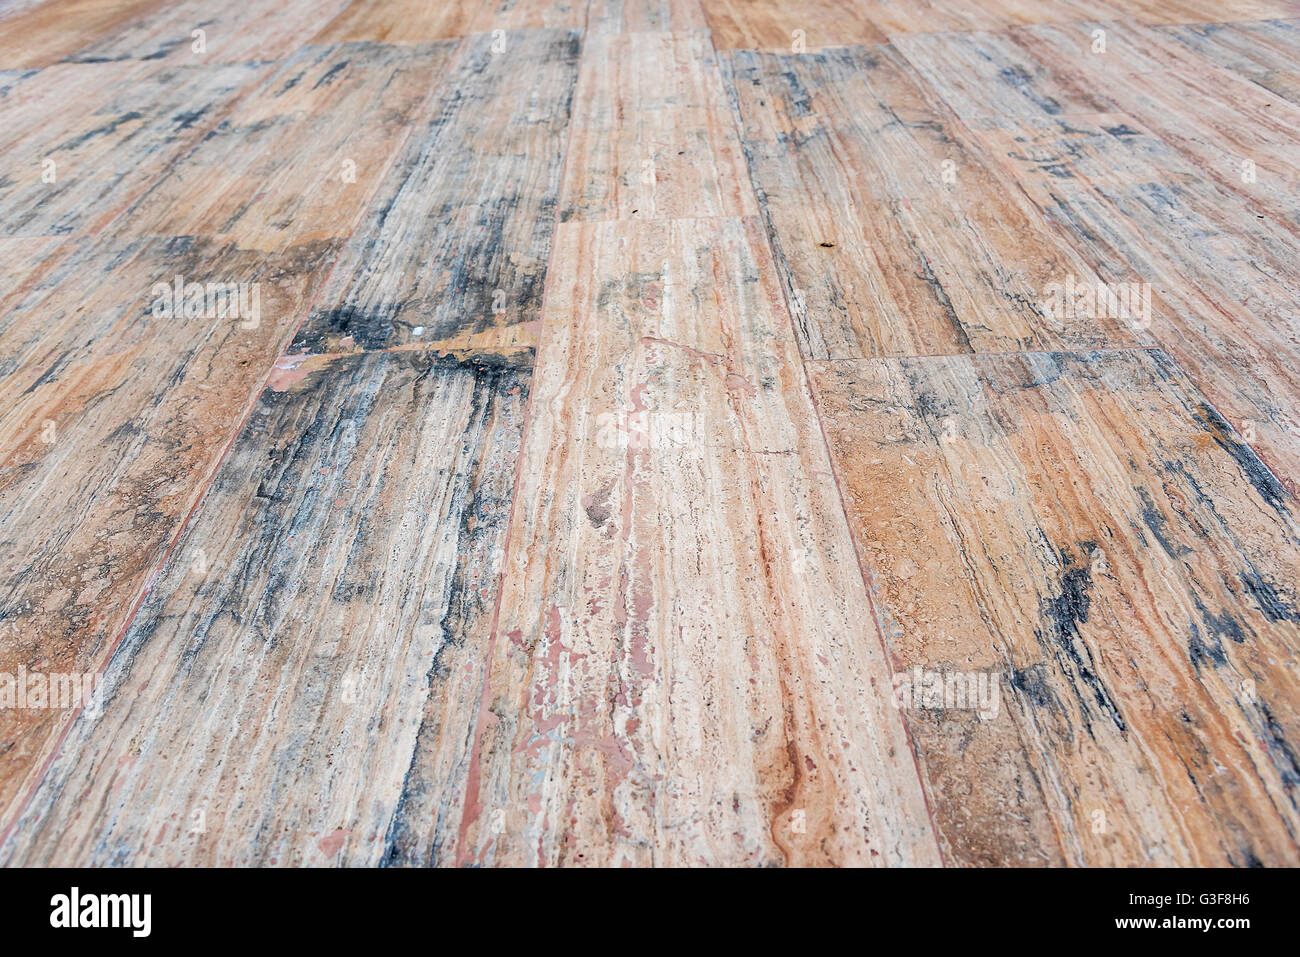 Pool wood floor texture the texture of the material used for pool wood floor  texture the